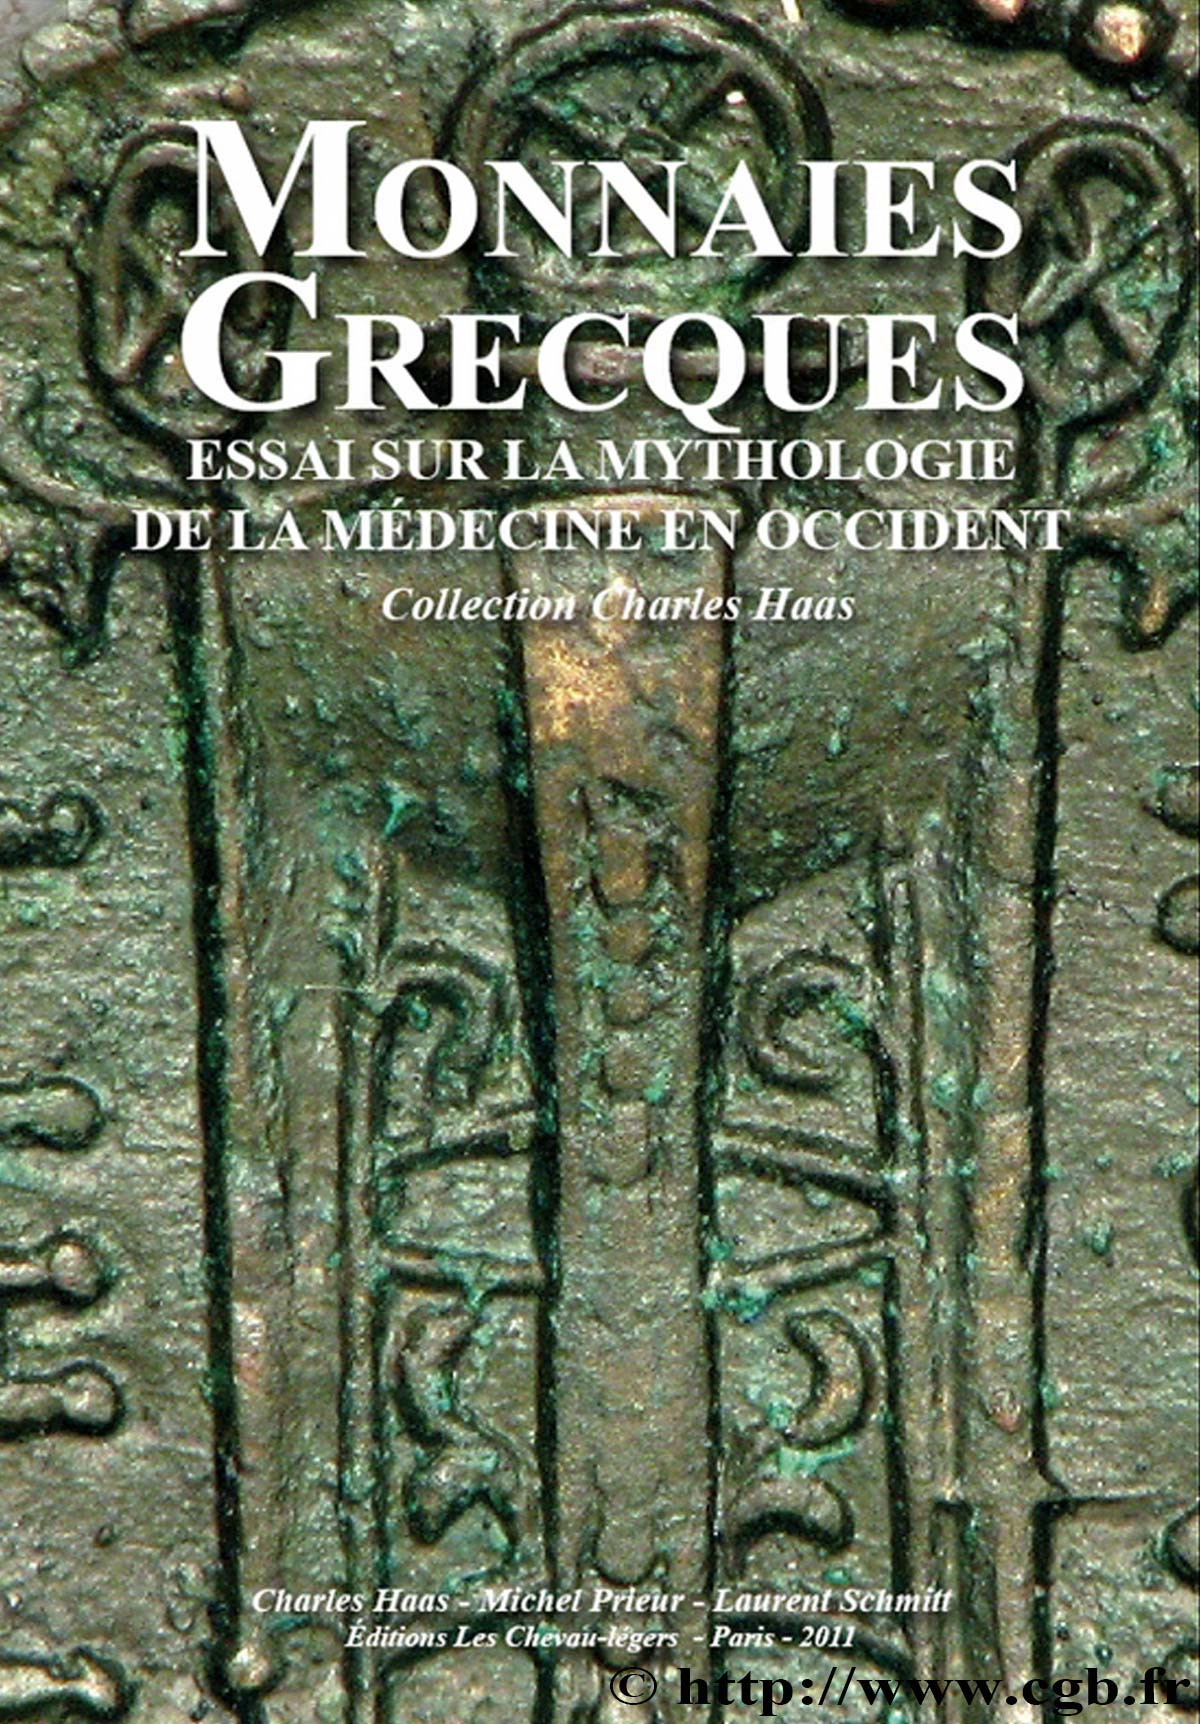 Monnaies Grecques, Essai sur la mythologie de la médecine en Occident, collection Charles Haas HAAS Charles, PRIEUR Michel, SCHMITT Laurent